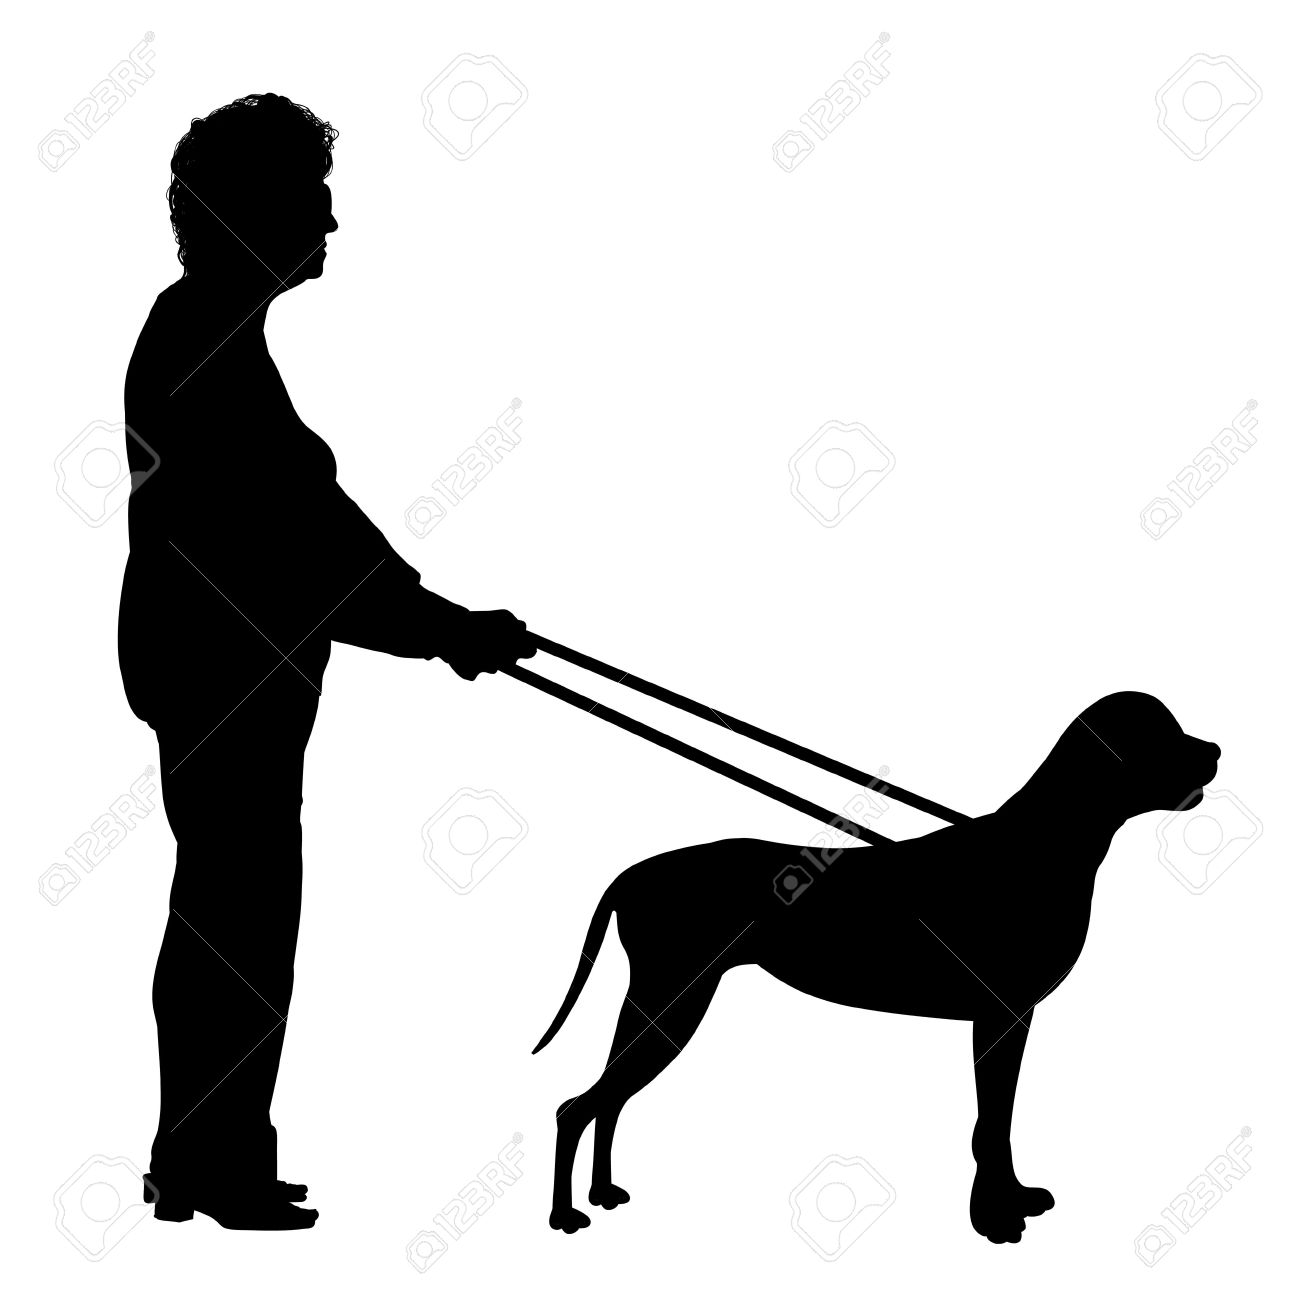 Illustration of a woman being guided by a  dog Stock Photo - 6641890